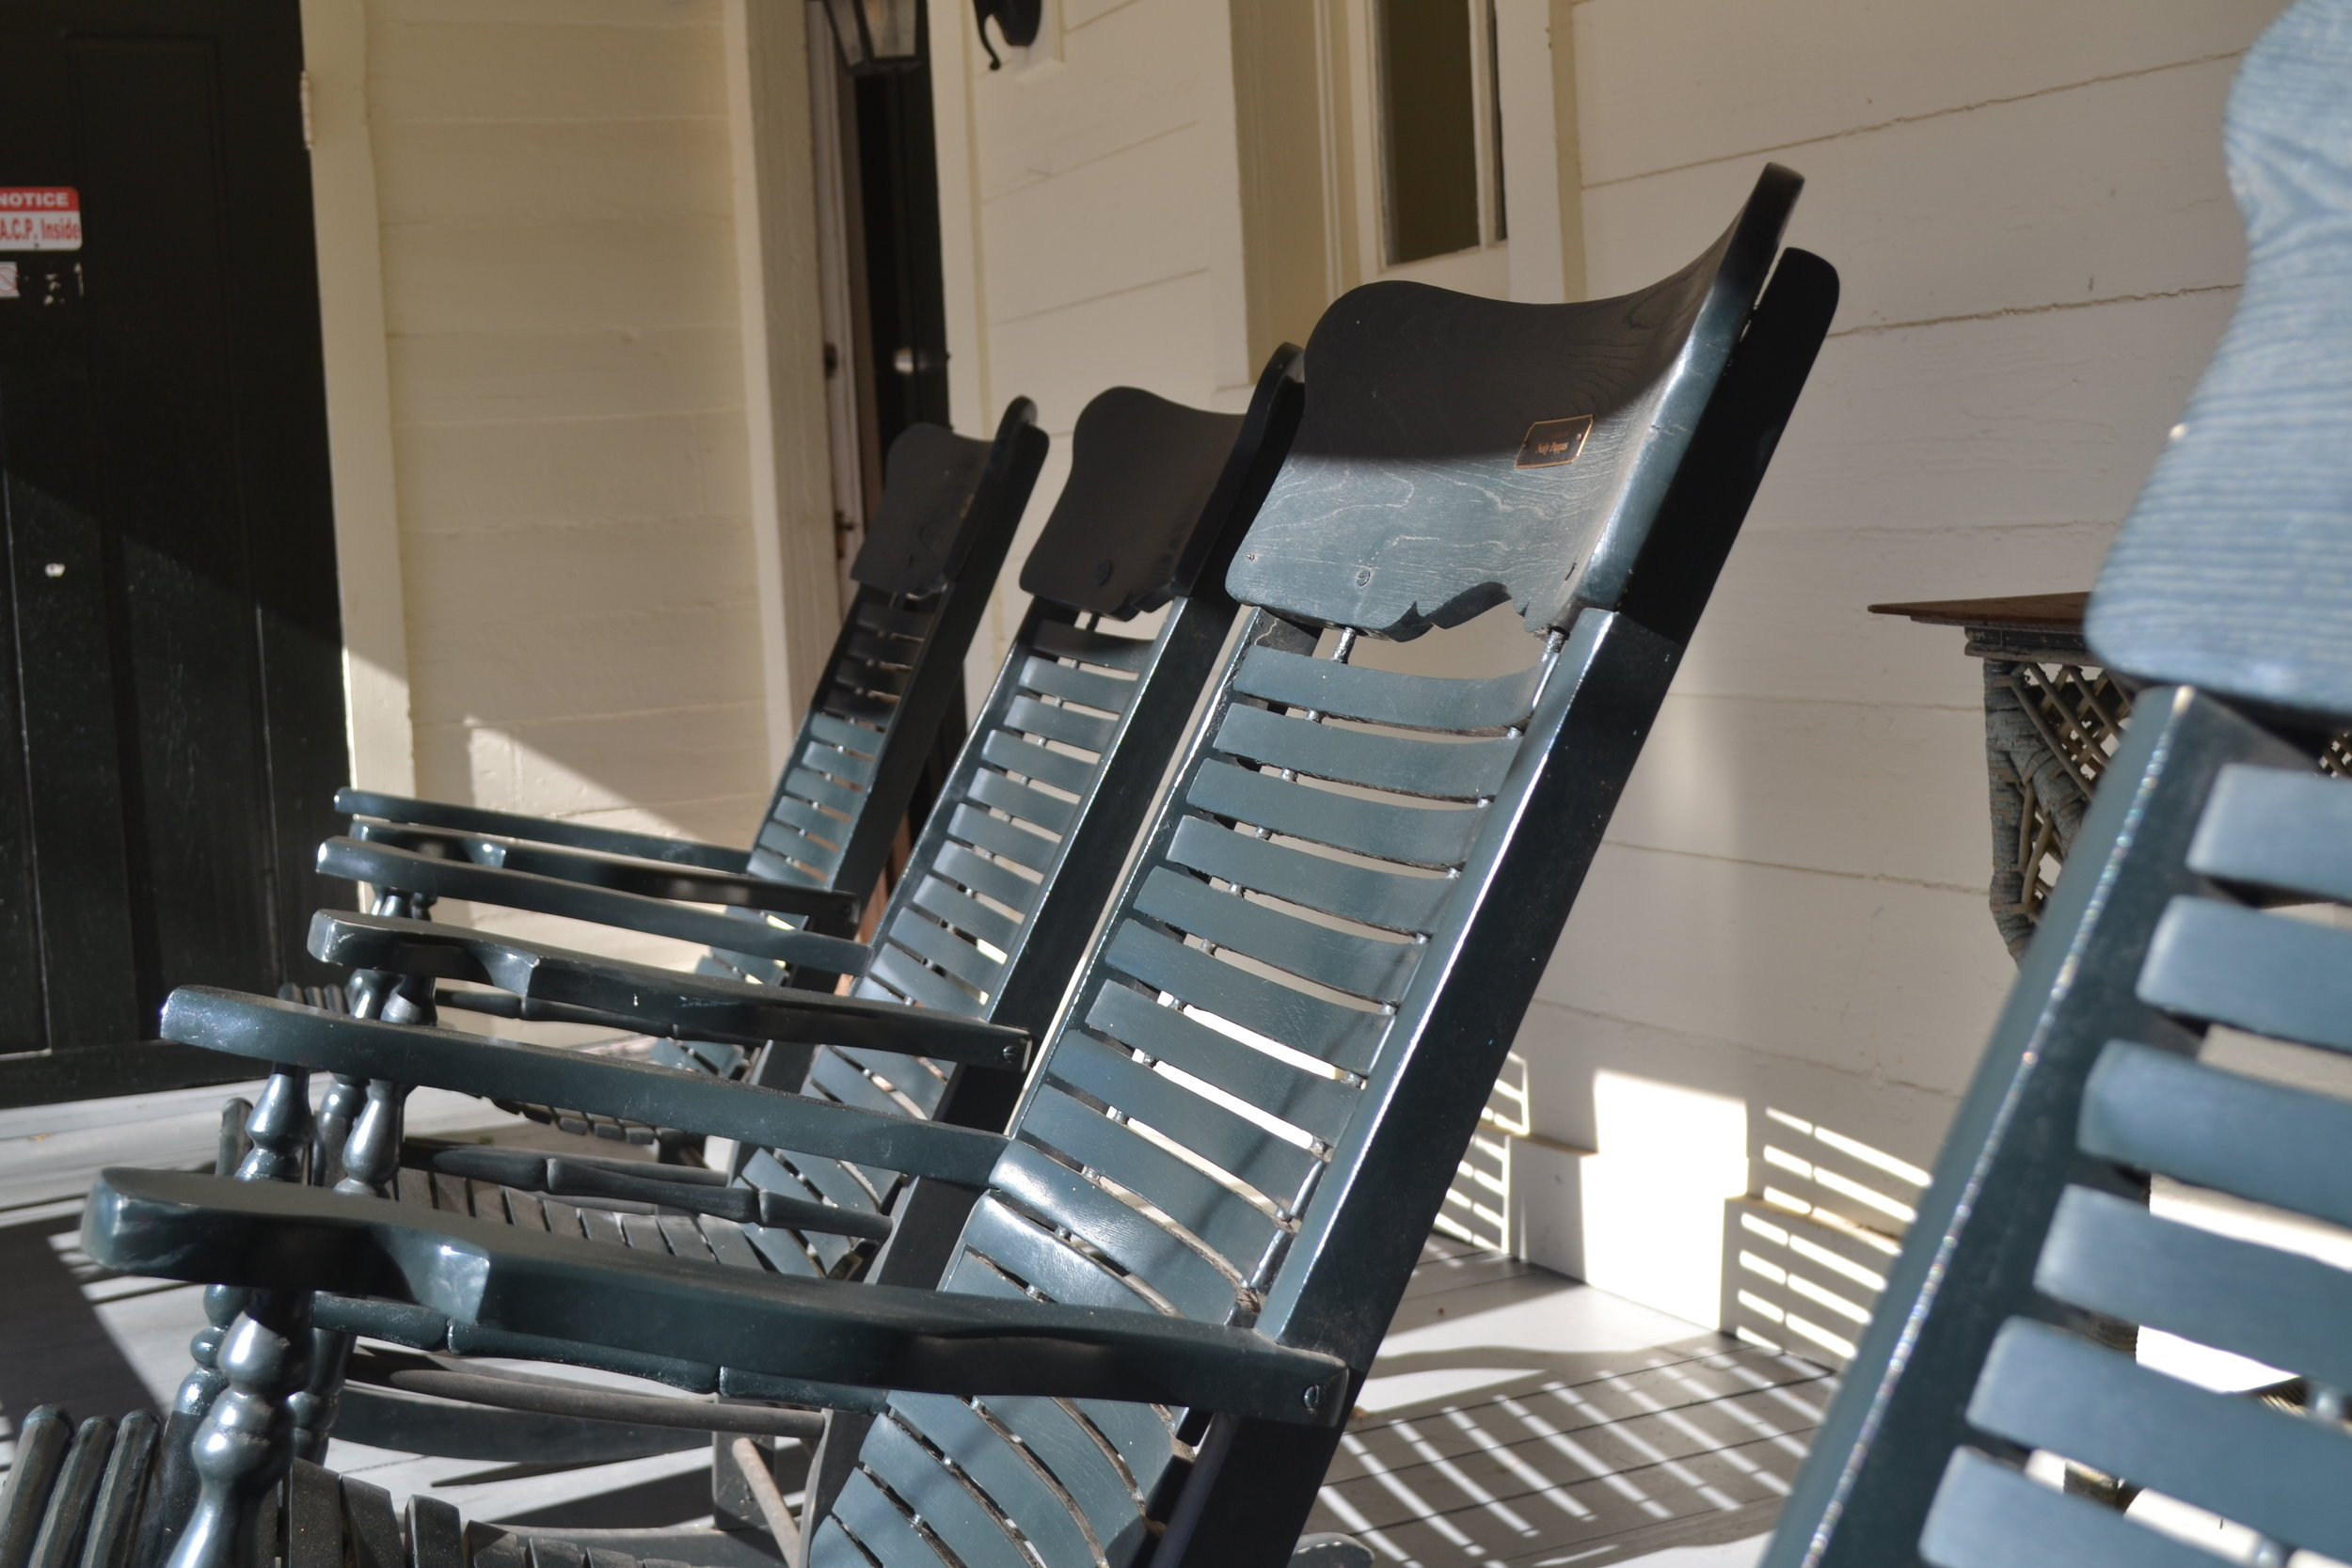 Historic rocking chairs that were restored as a part of a memorial gift program.